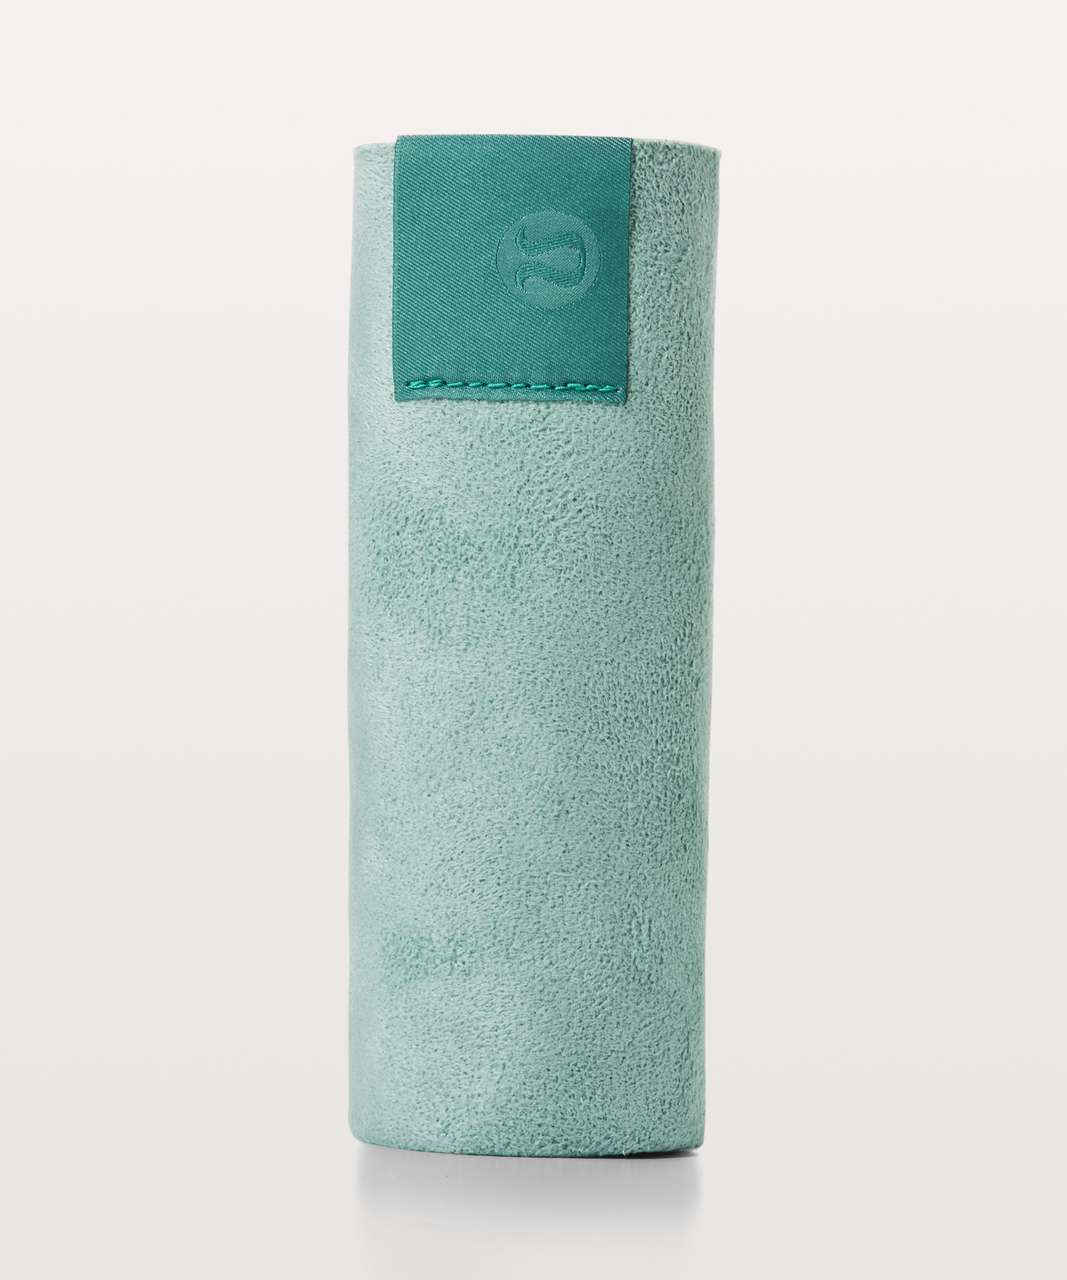 Lululemon The (Small) Towel - Tonic Sea